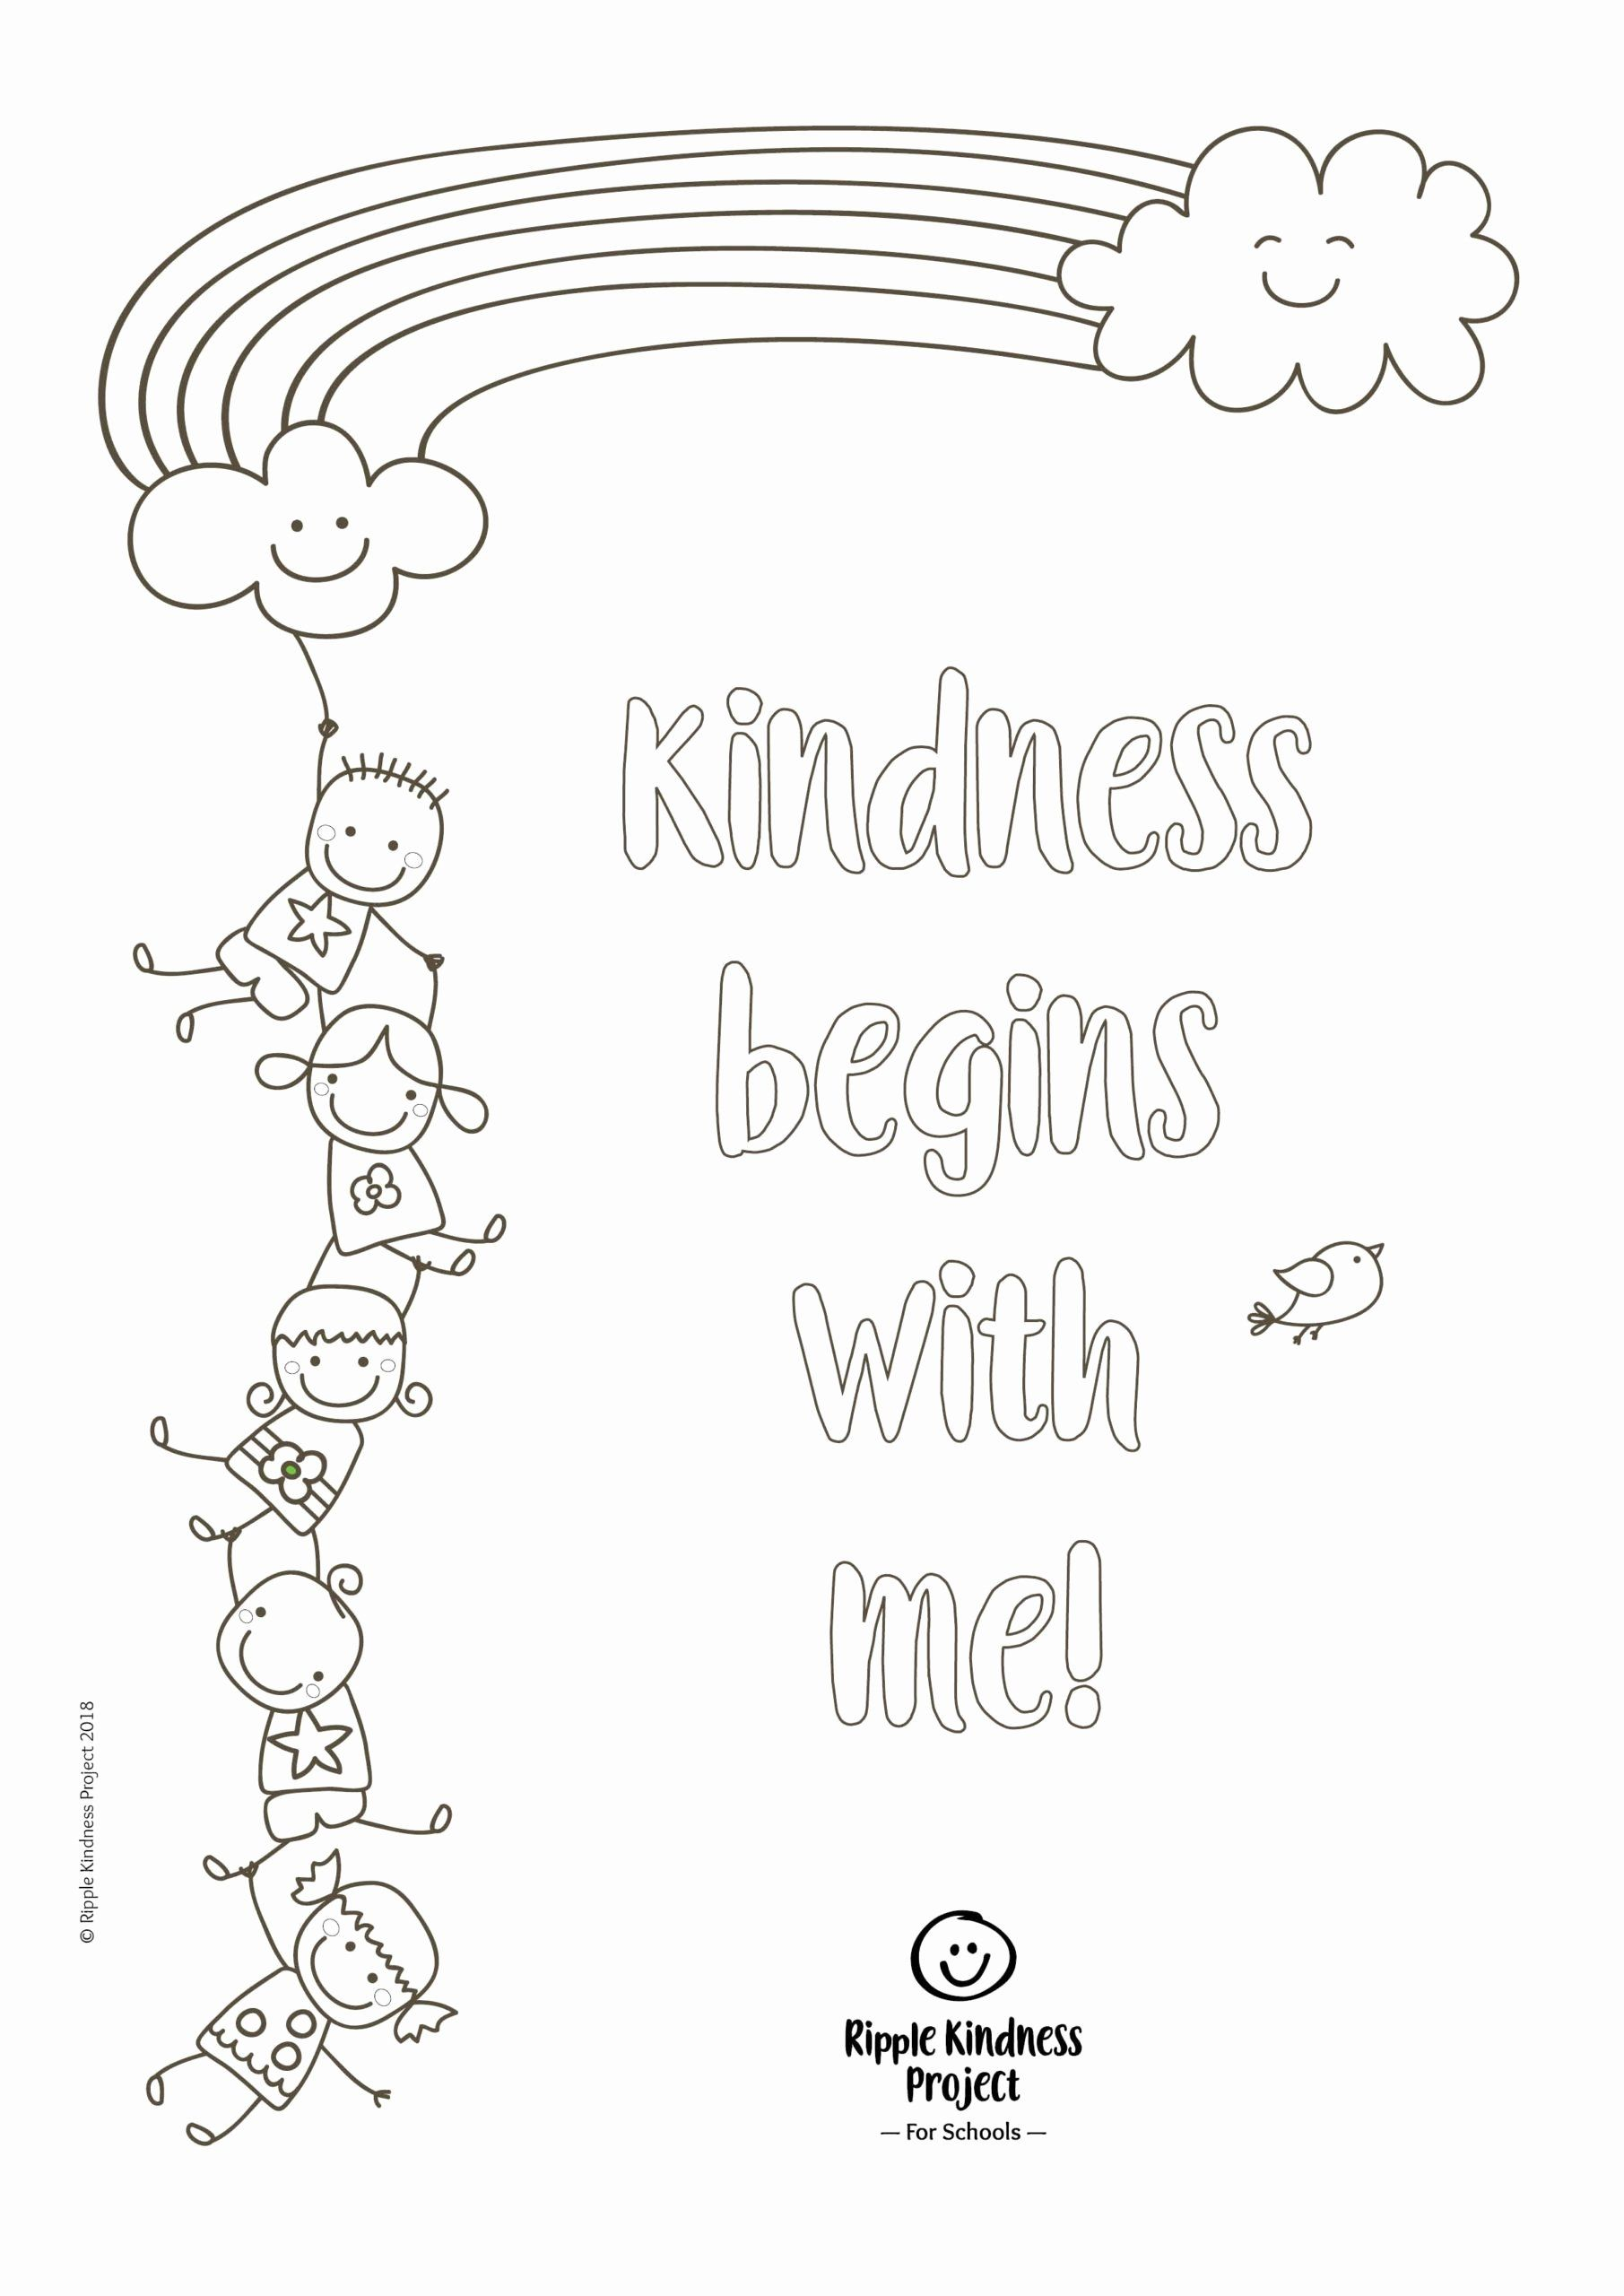 Free Printable Self Esteem Worksheets For Kids Ideas Free Printables Teaching Kindness Activities Prin Teaching Kindness Empathy Activities Kindness Activities